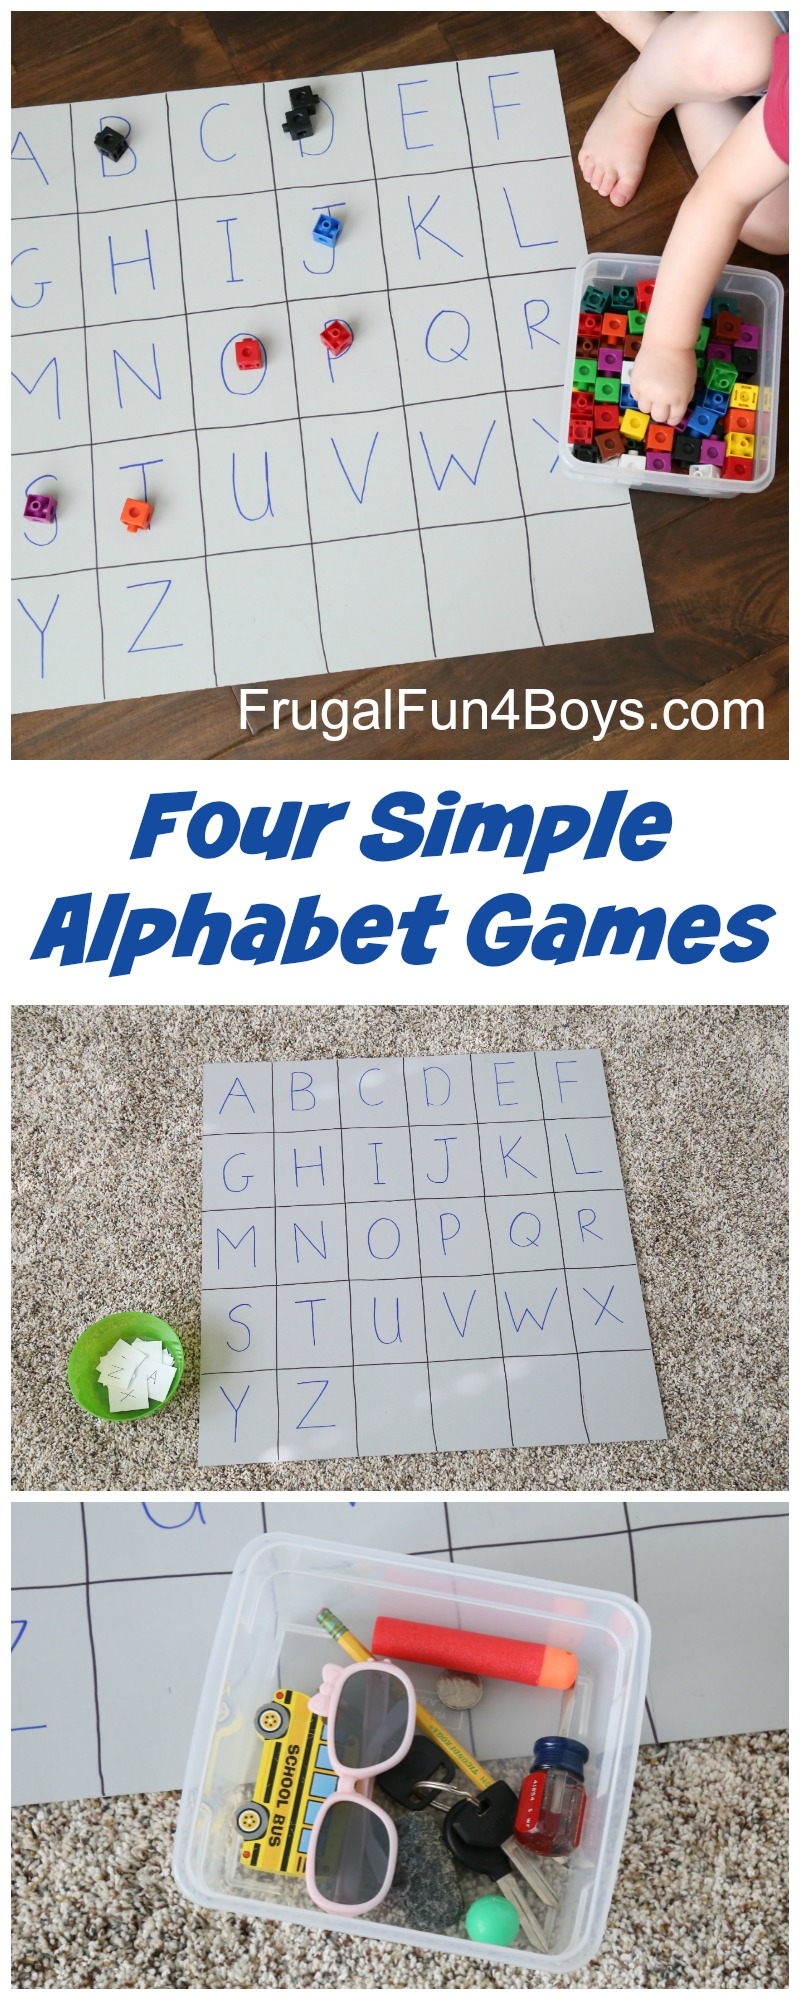 Four Simple Alphabet Games for Preschoolers to Learn the Letters